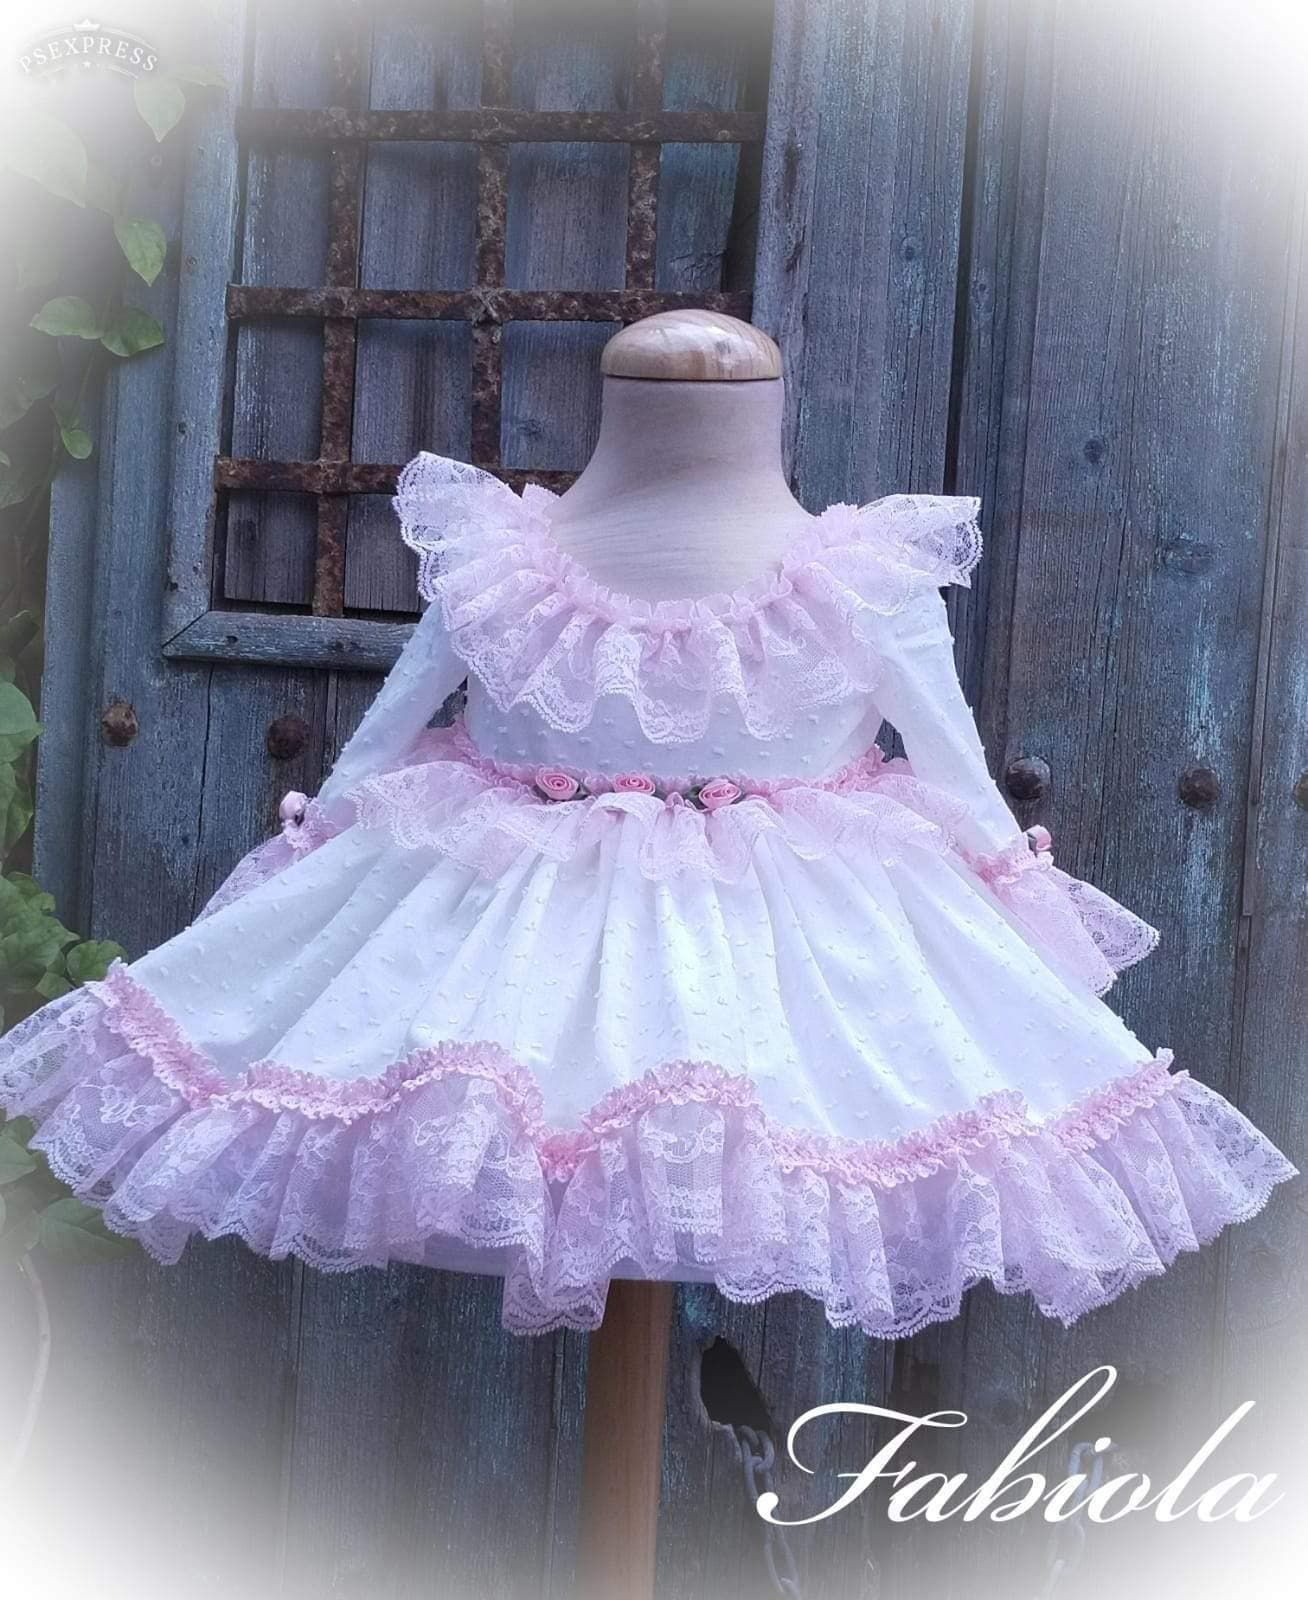 Exclusive Girls Dresses Exclusive - White & Pink Rose & Lace Princess Puffball Fabiola Dress